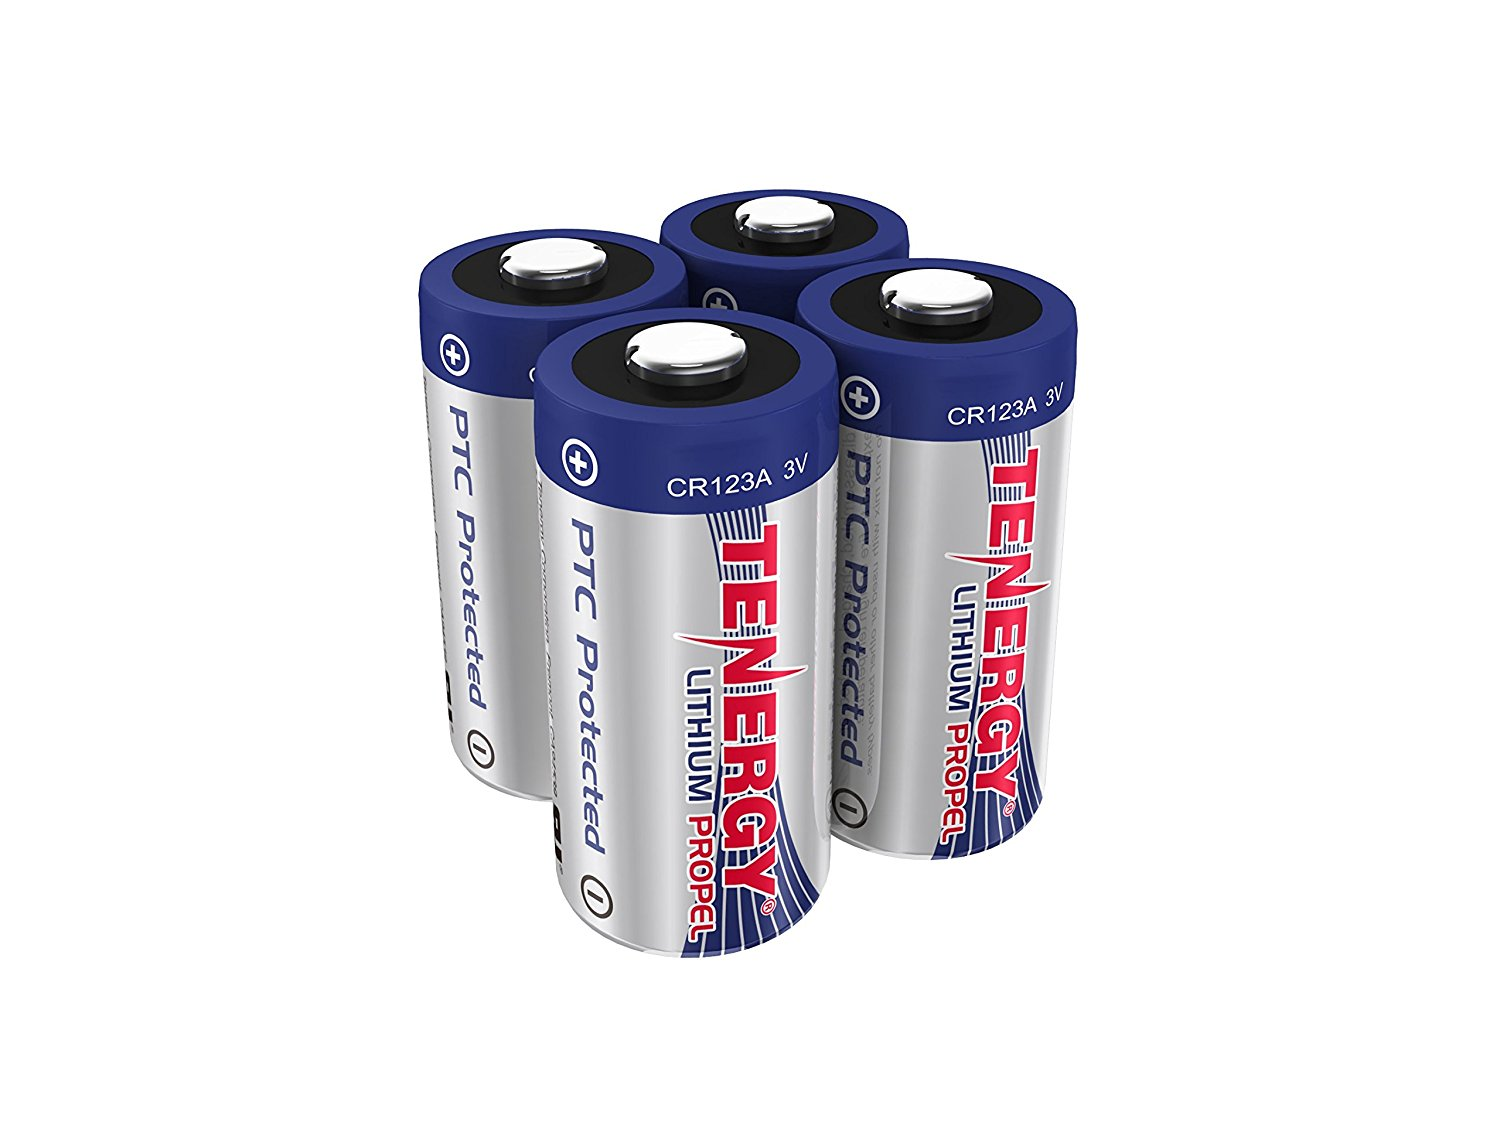 Tenergy Tenergy 3v Cr123a Lithium Batteries Ptc Protected 4 Pack